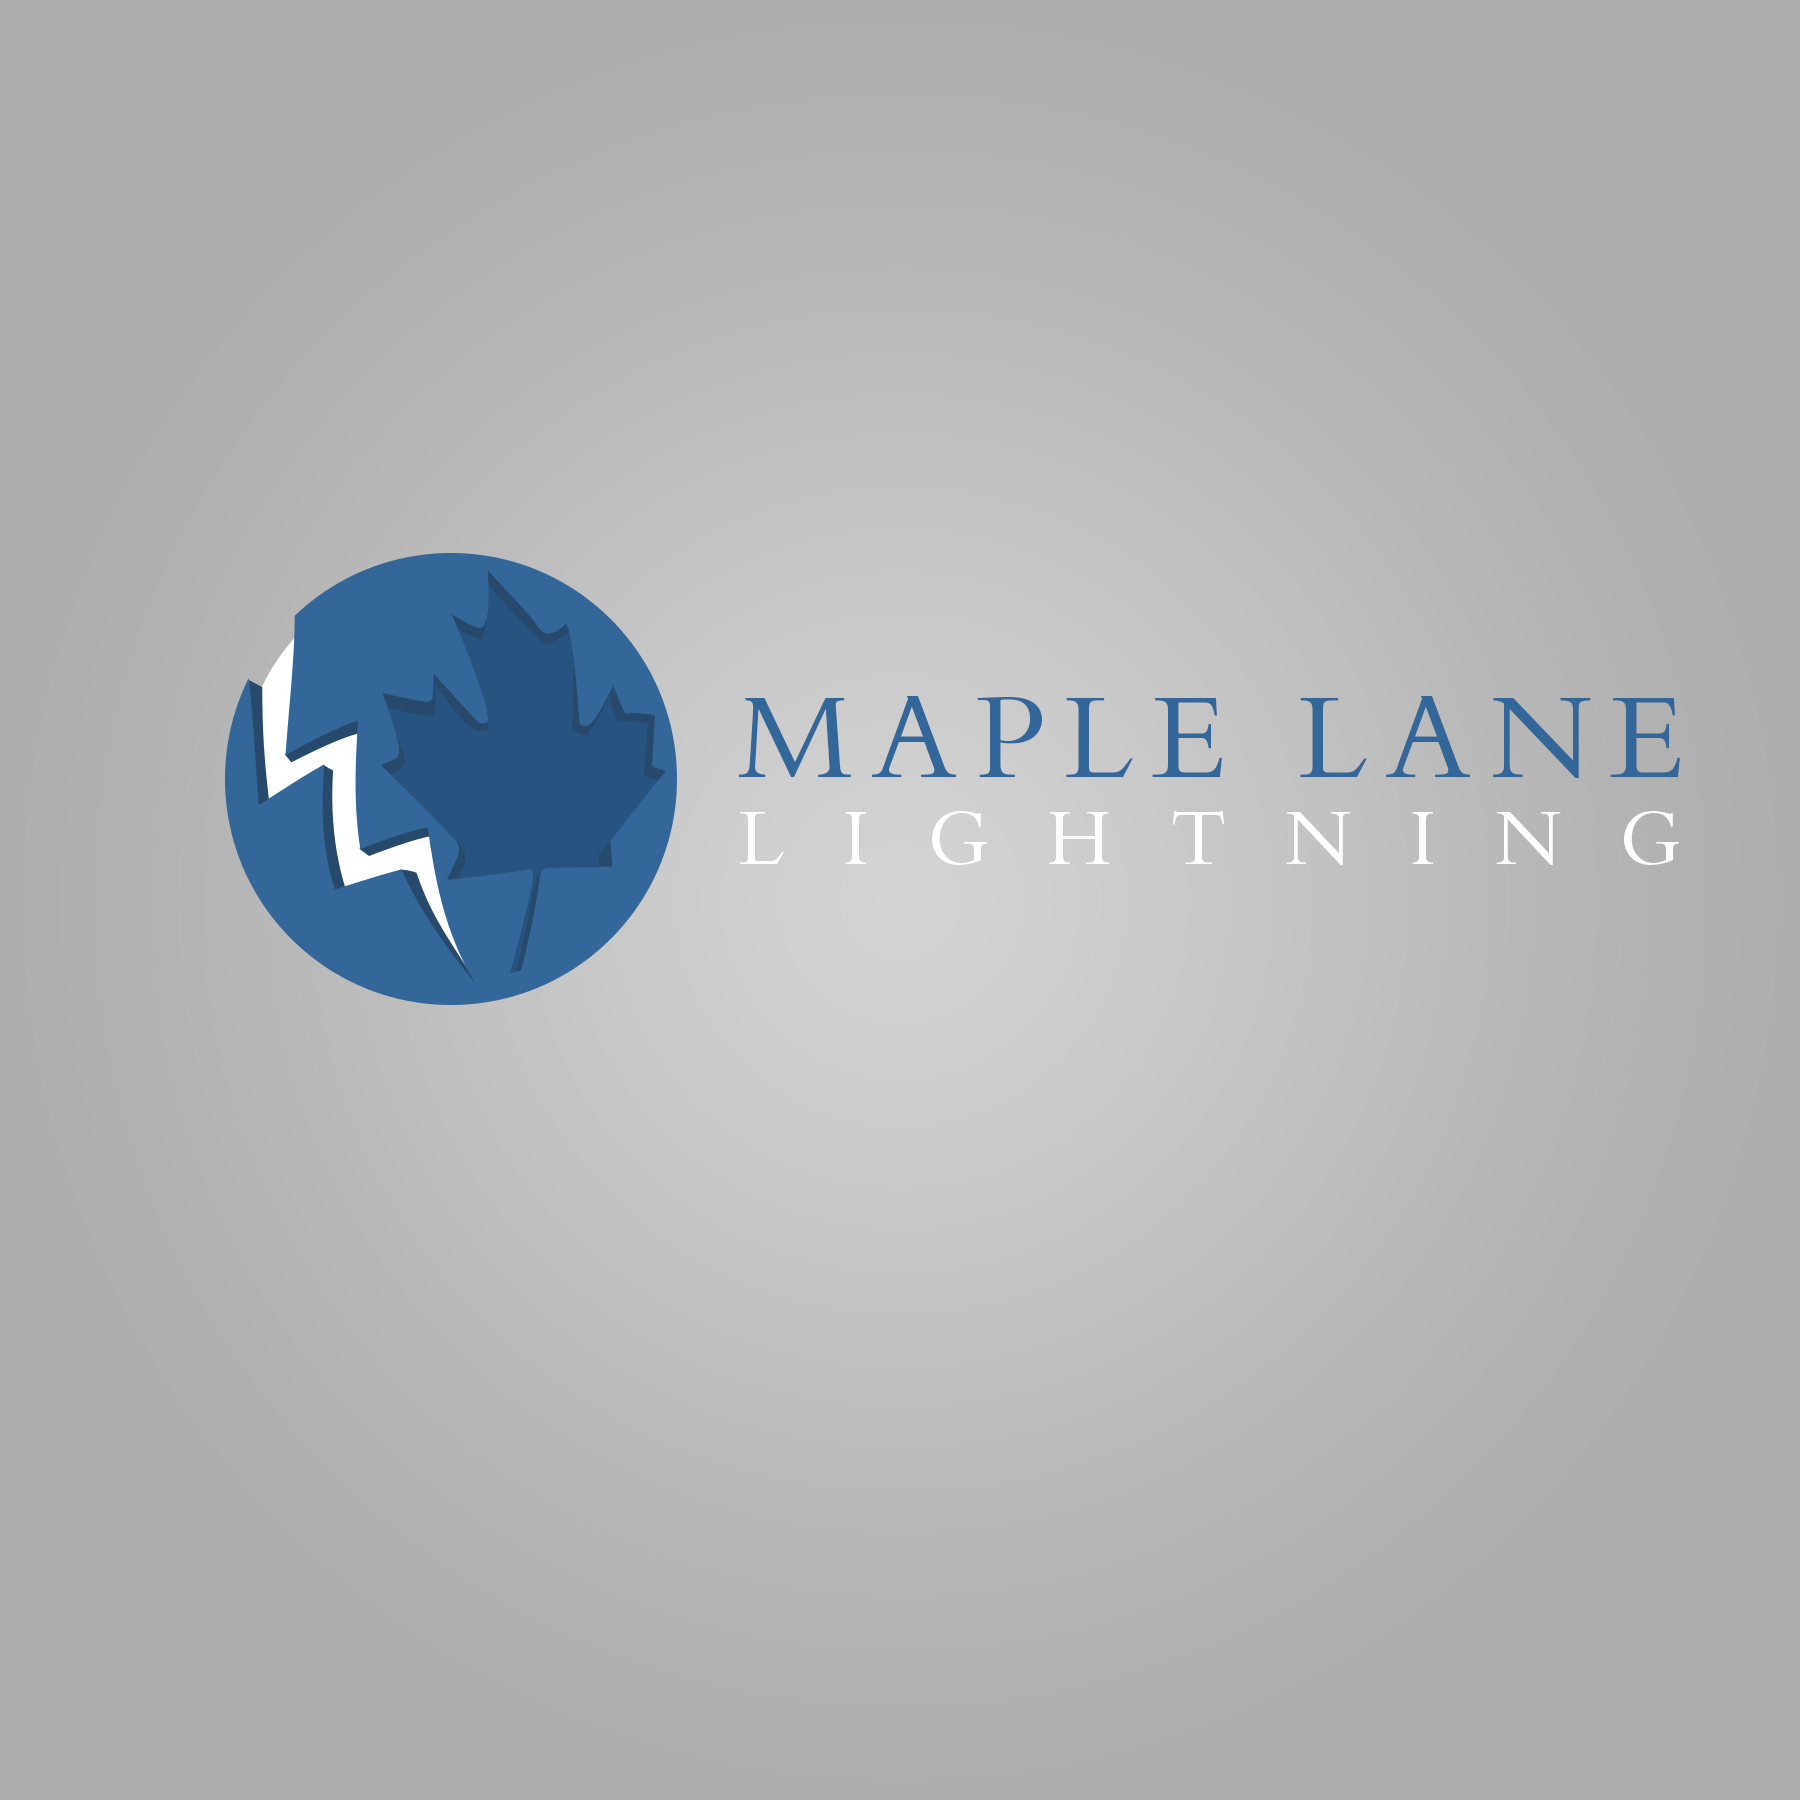 Logo Design by Lemuel Arvin Tanzo - Entry No. 51 in the Logo Design Contest Maple Lane Logo Design.